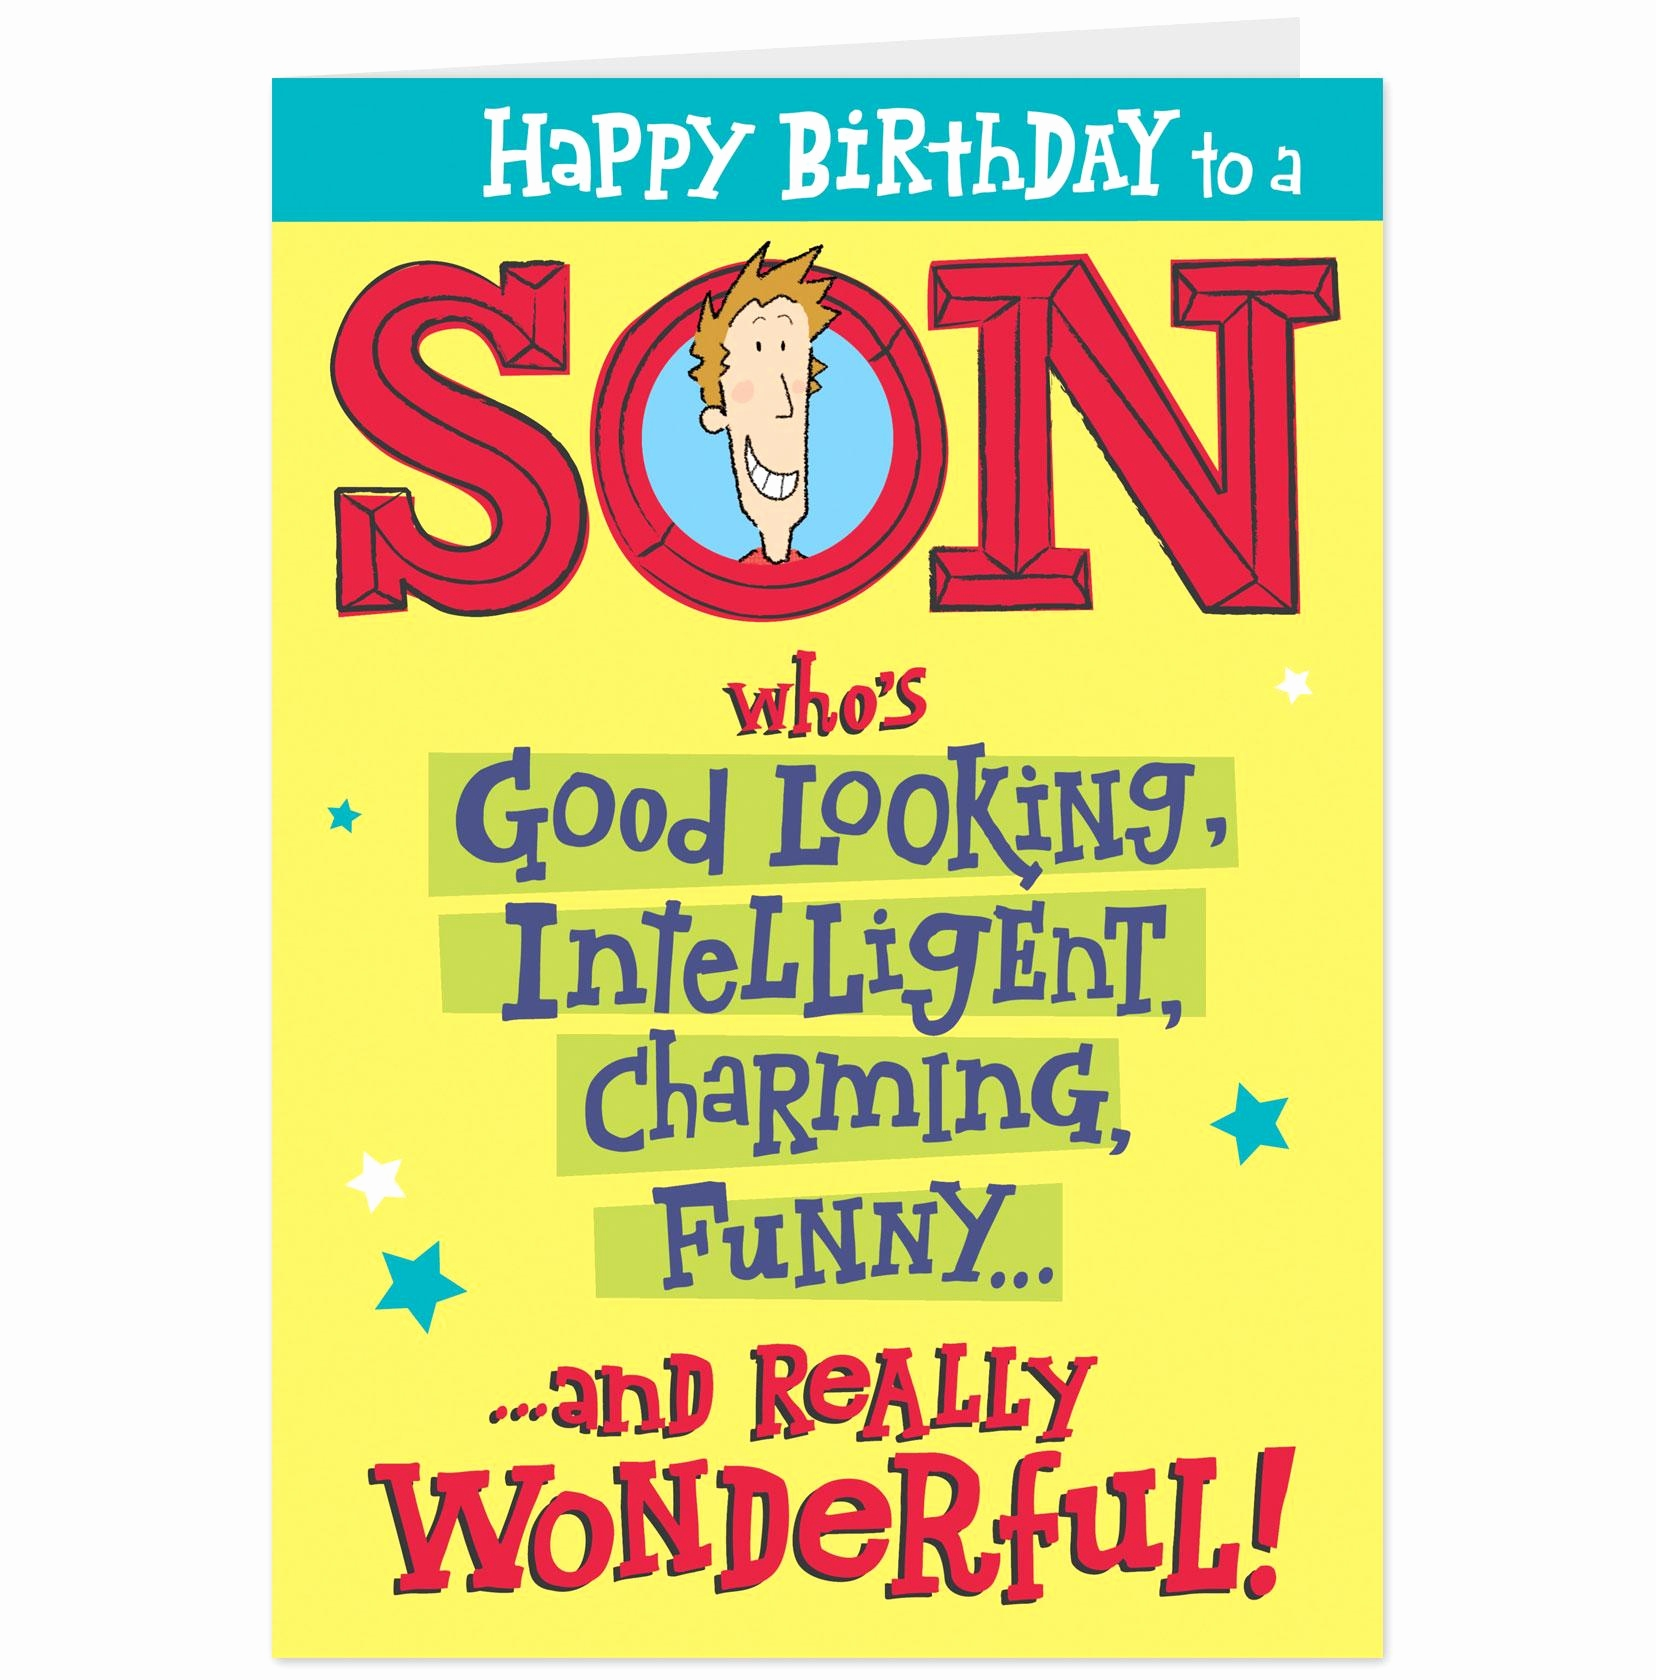 free printable 18th birthday cards ; happy-birthday-cards-for-my-son-lovely-design-free-printable-birthday-cards-for-18-year-old-son-of-happy-birthday-cards-for-my-son